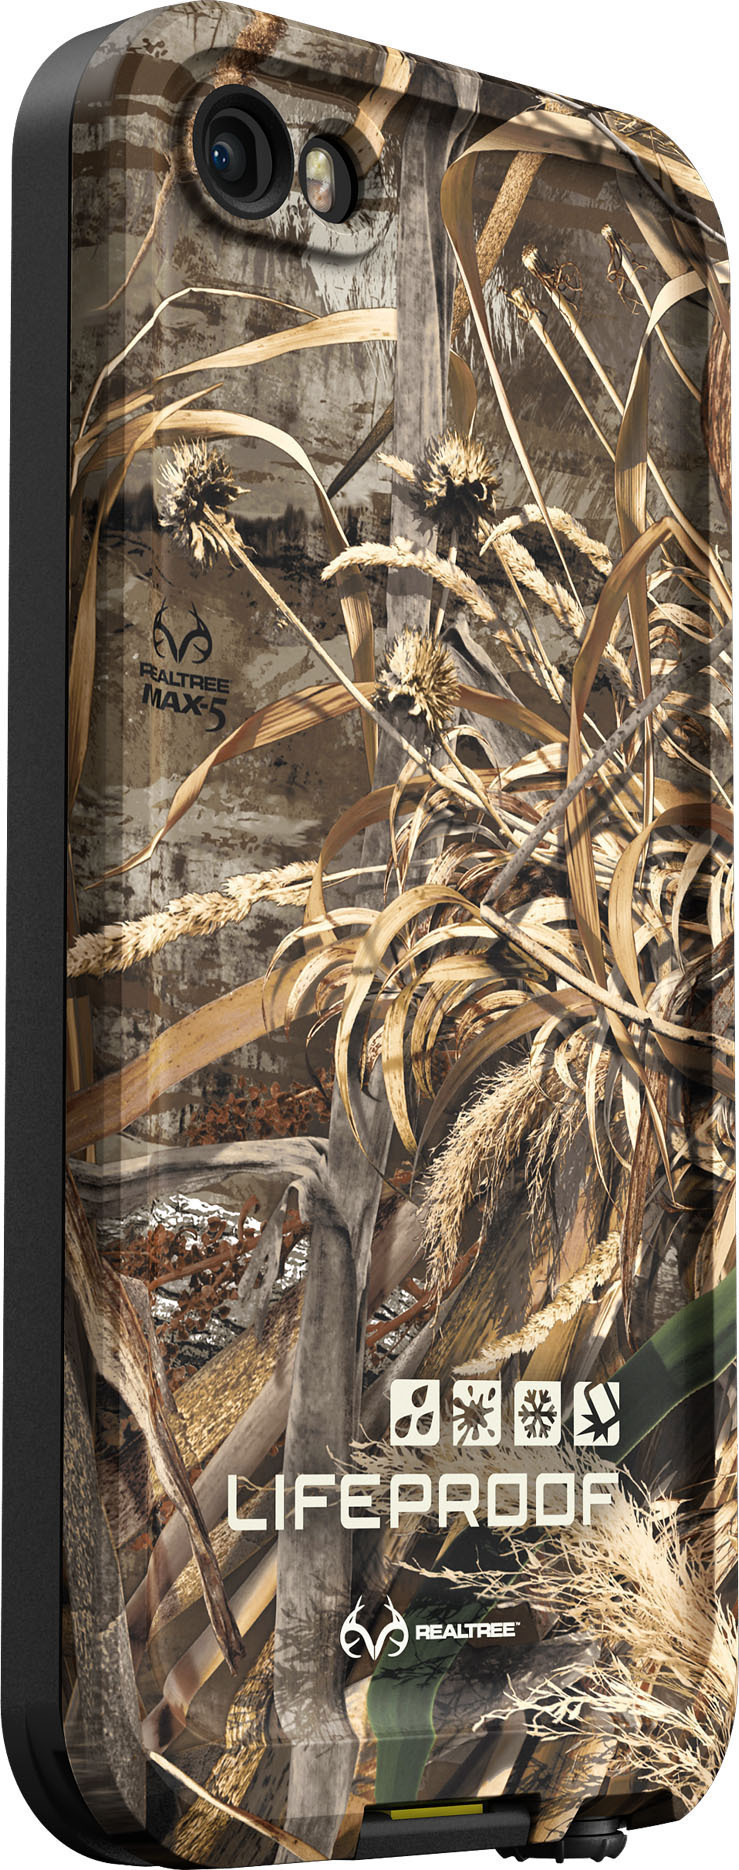 LifeProof Announces fre with Realtree Camo for iPhone 5   iPhone 5s at CES  2014  cc7578714ef8